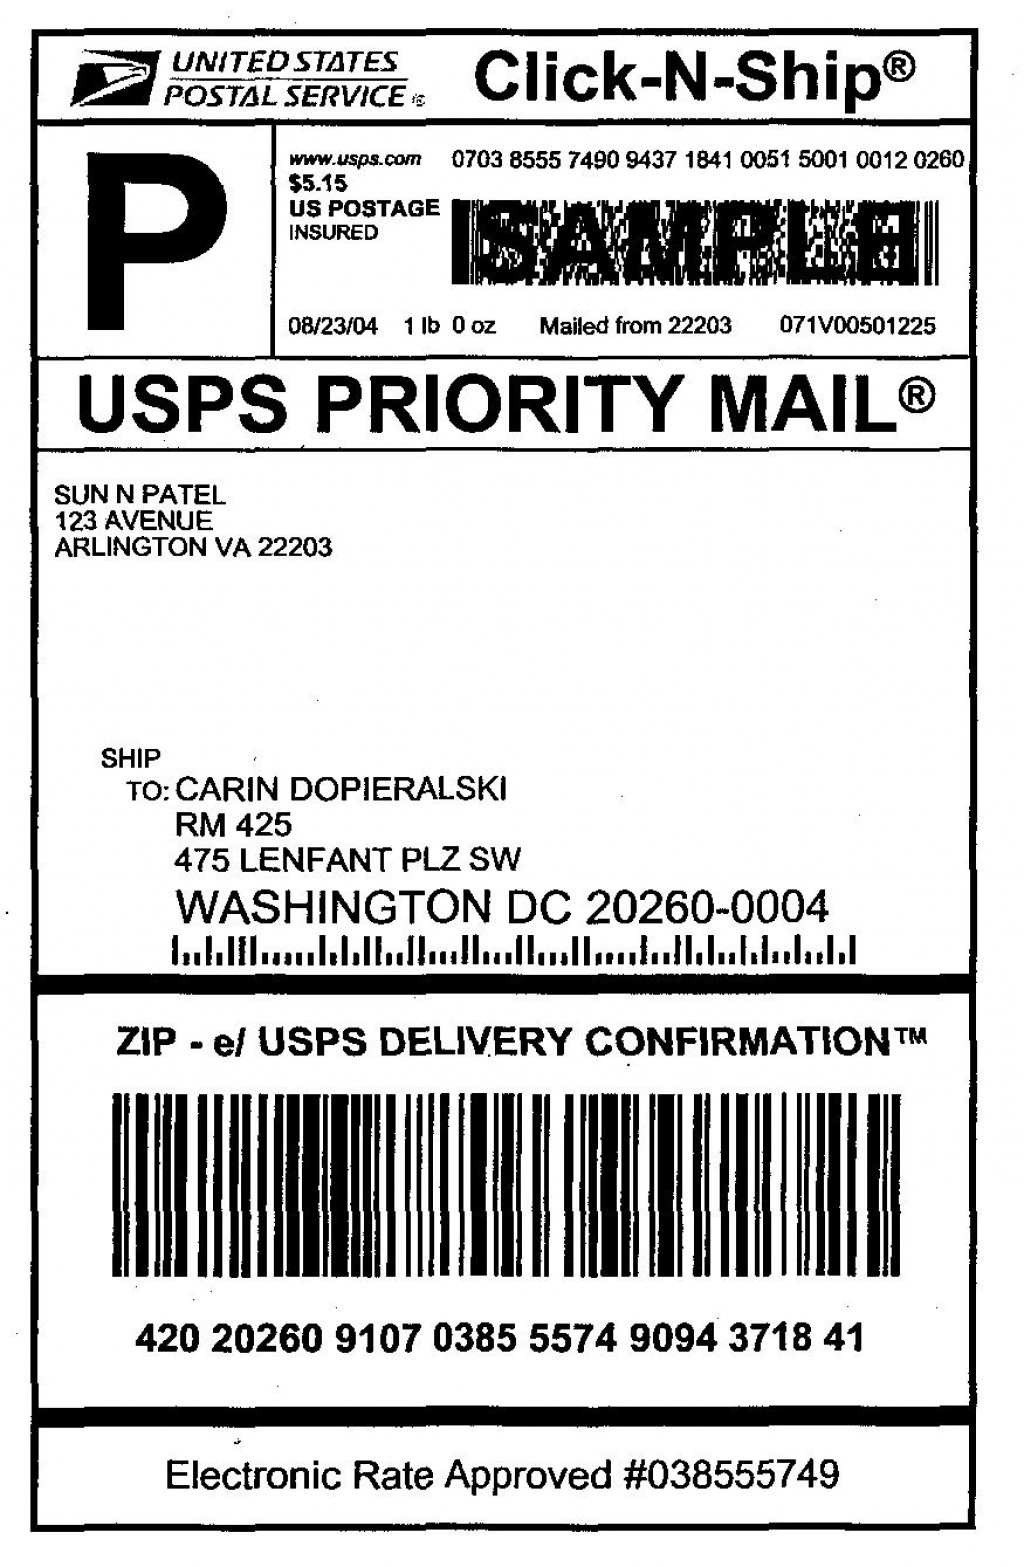 009 Amazing Usp Shipping Label Template Free Image Large